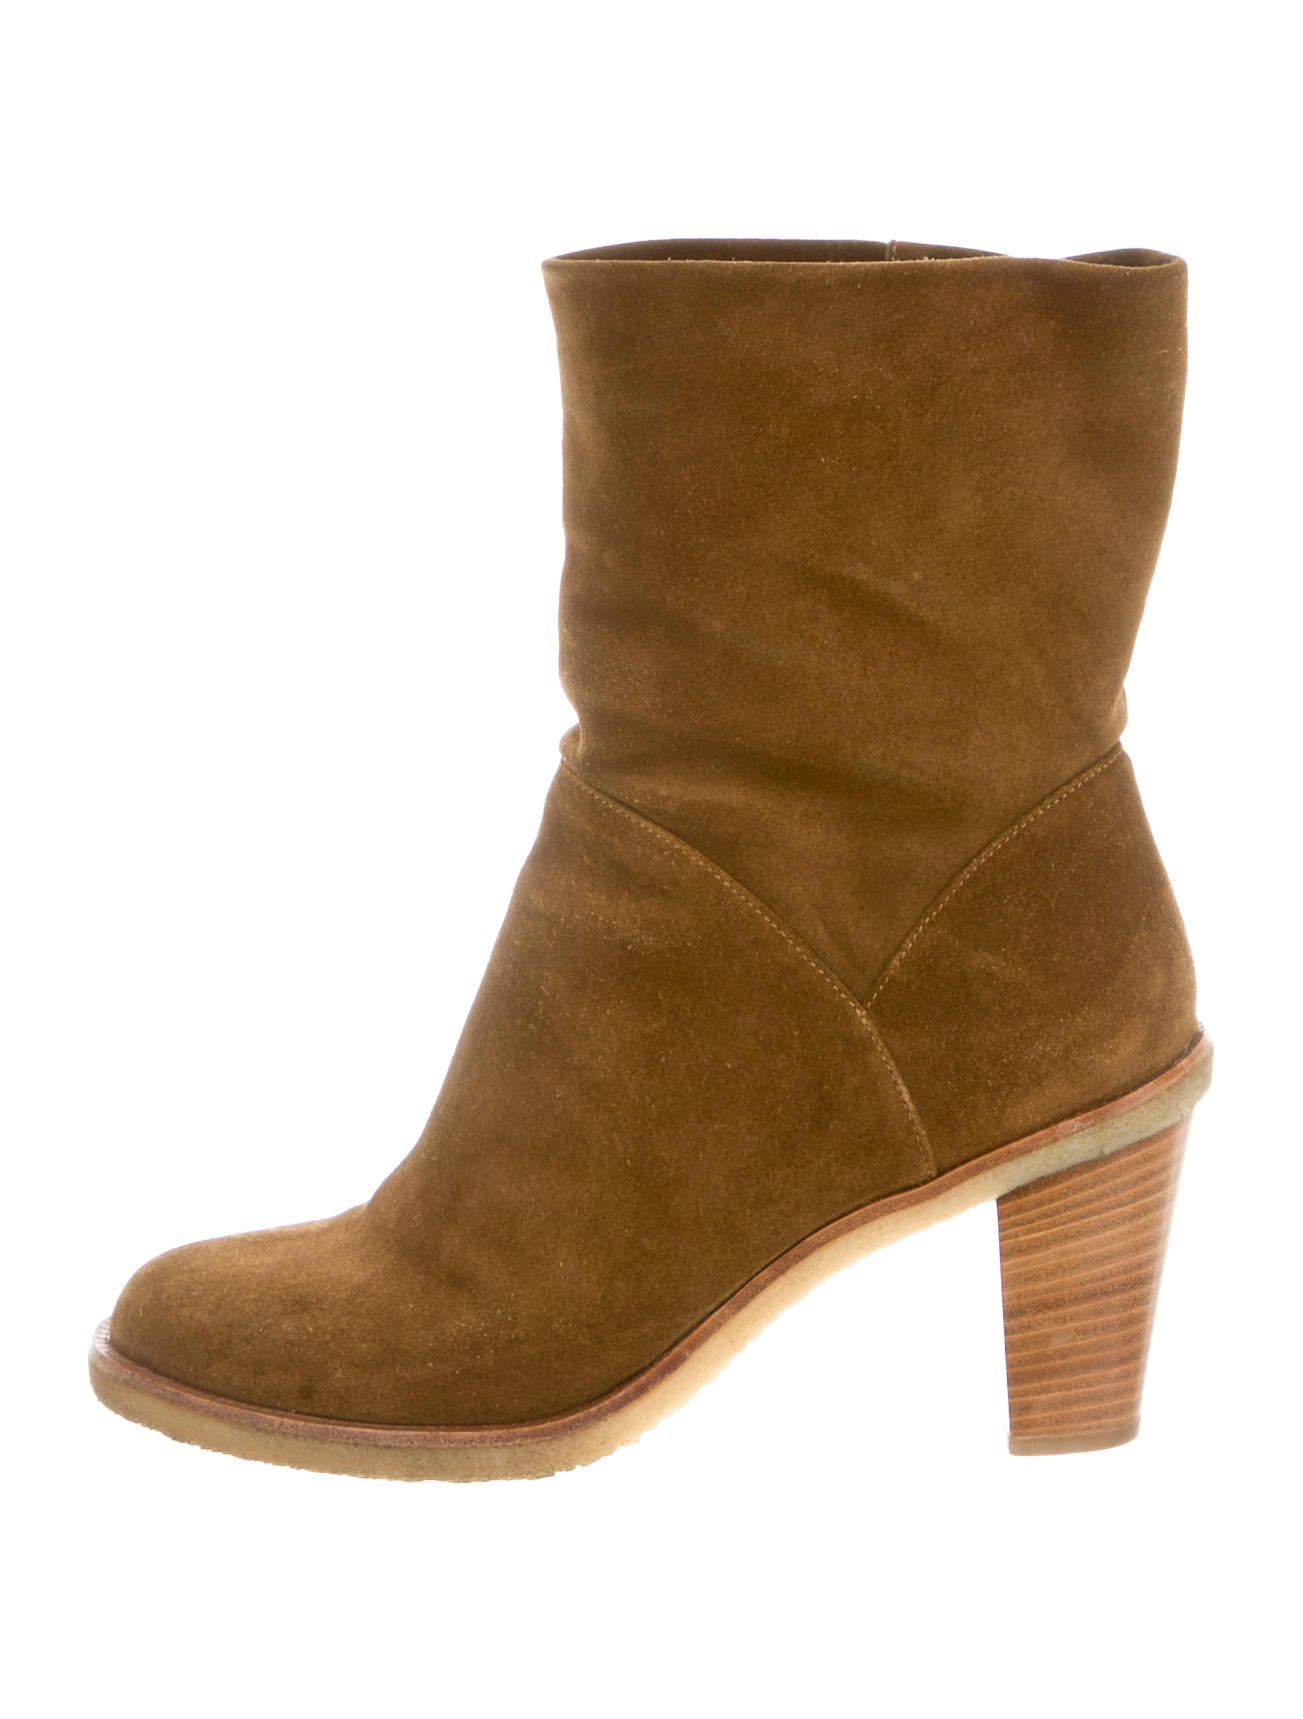 robert clergerie toe ankle boots shoes rog23987